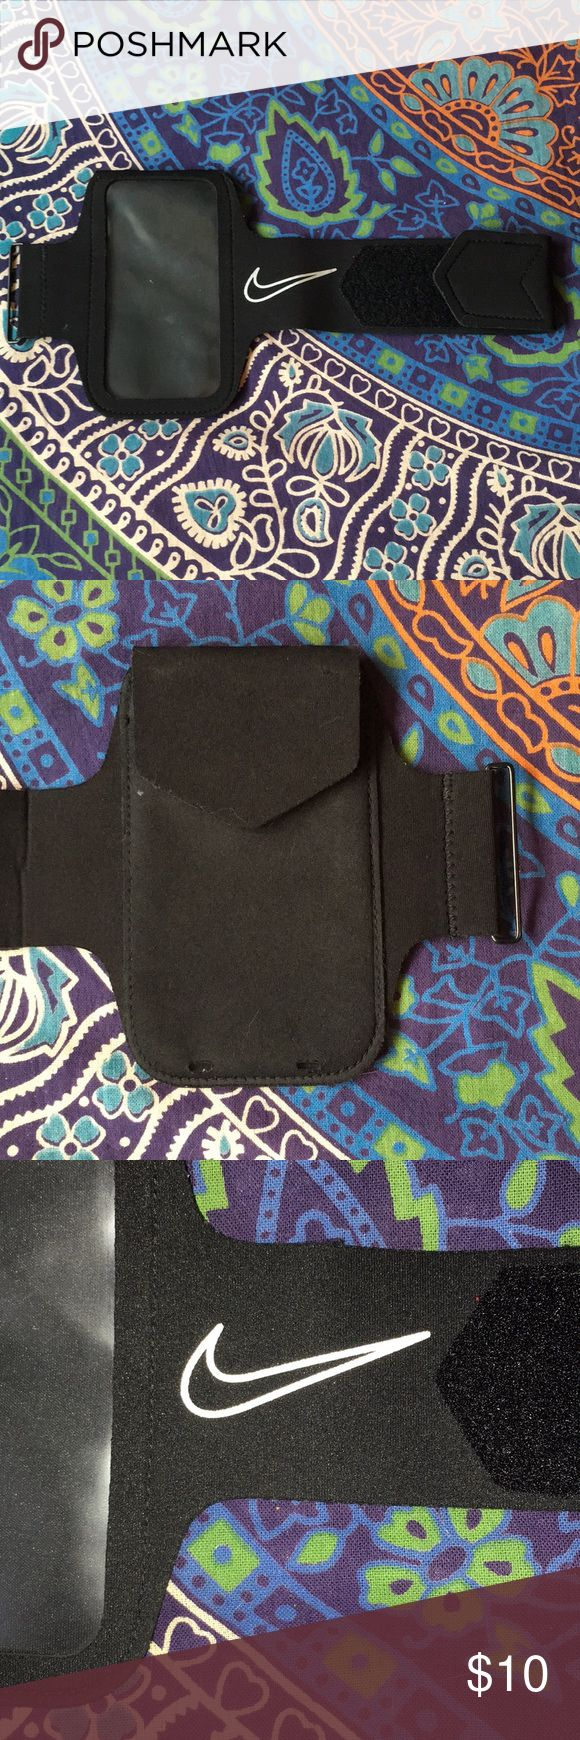 Nike running armband Great condition, didn't fit my iPhone 6s but will fit a 6 or 7 or any phone smaller. Reflective detail. Nike Accessories Phone Cases